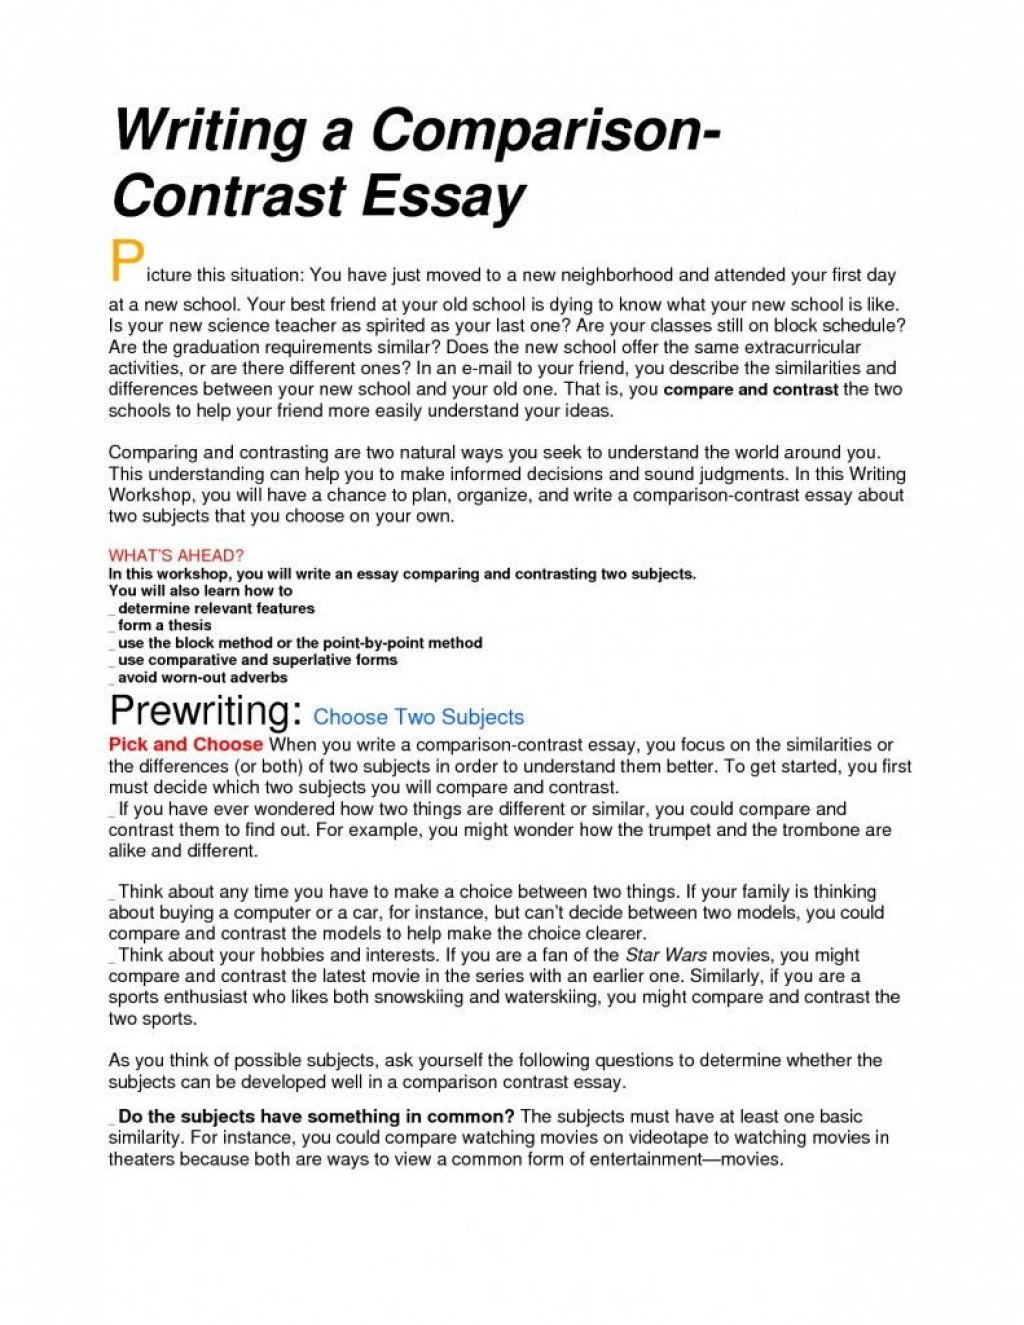 020 Literary Review Is Summary About Specific Topic In Essay Formare Contrast Examples College And High School For Students Outline Vs Pdf Free Level Example Striking Compare 7th Grade Comparison Elementary Large